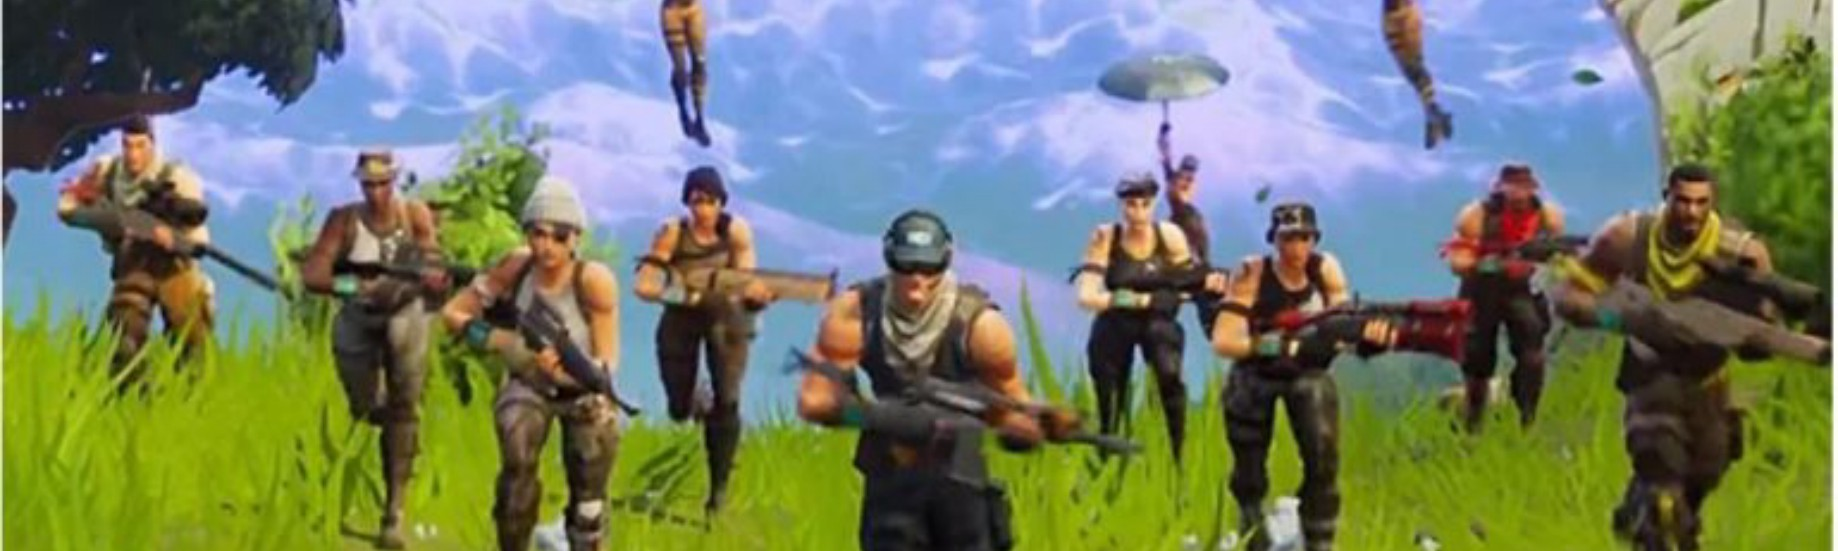 FORTNITE IS UPON US: The strategy behind the Epic Games